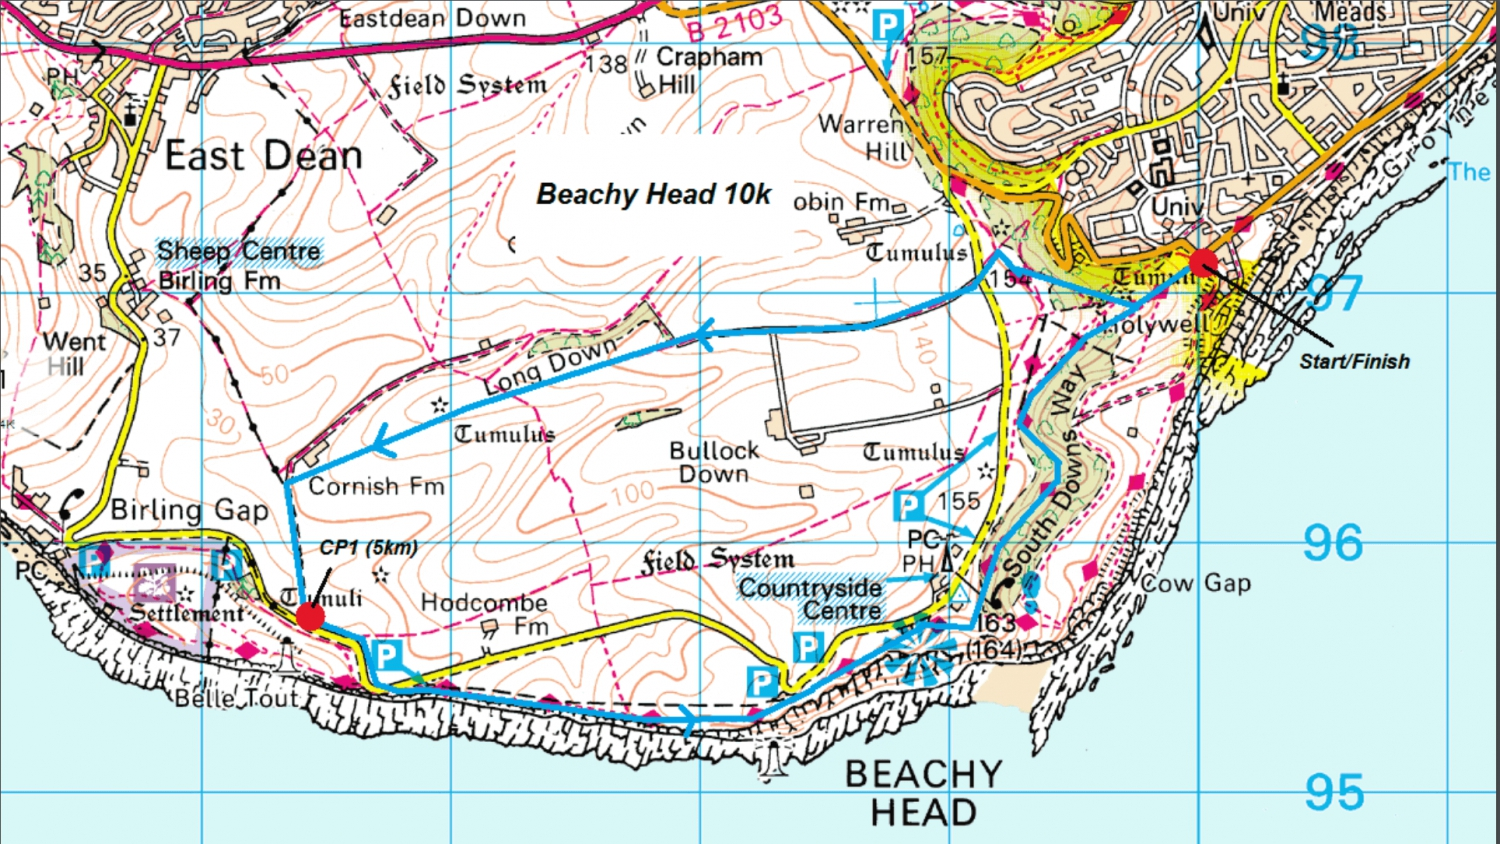 Beachy Head 10k route